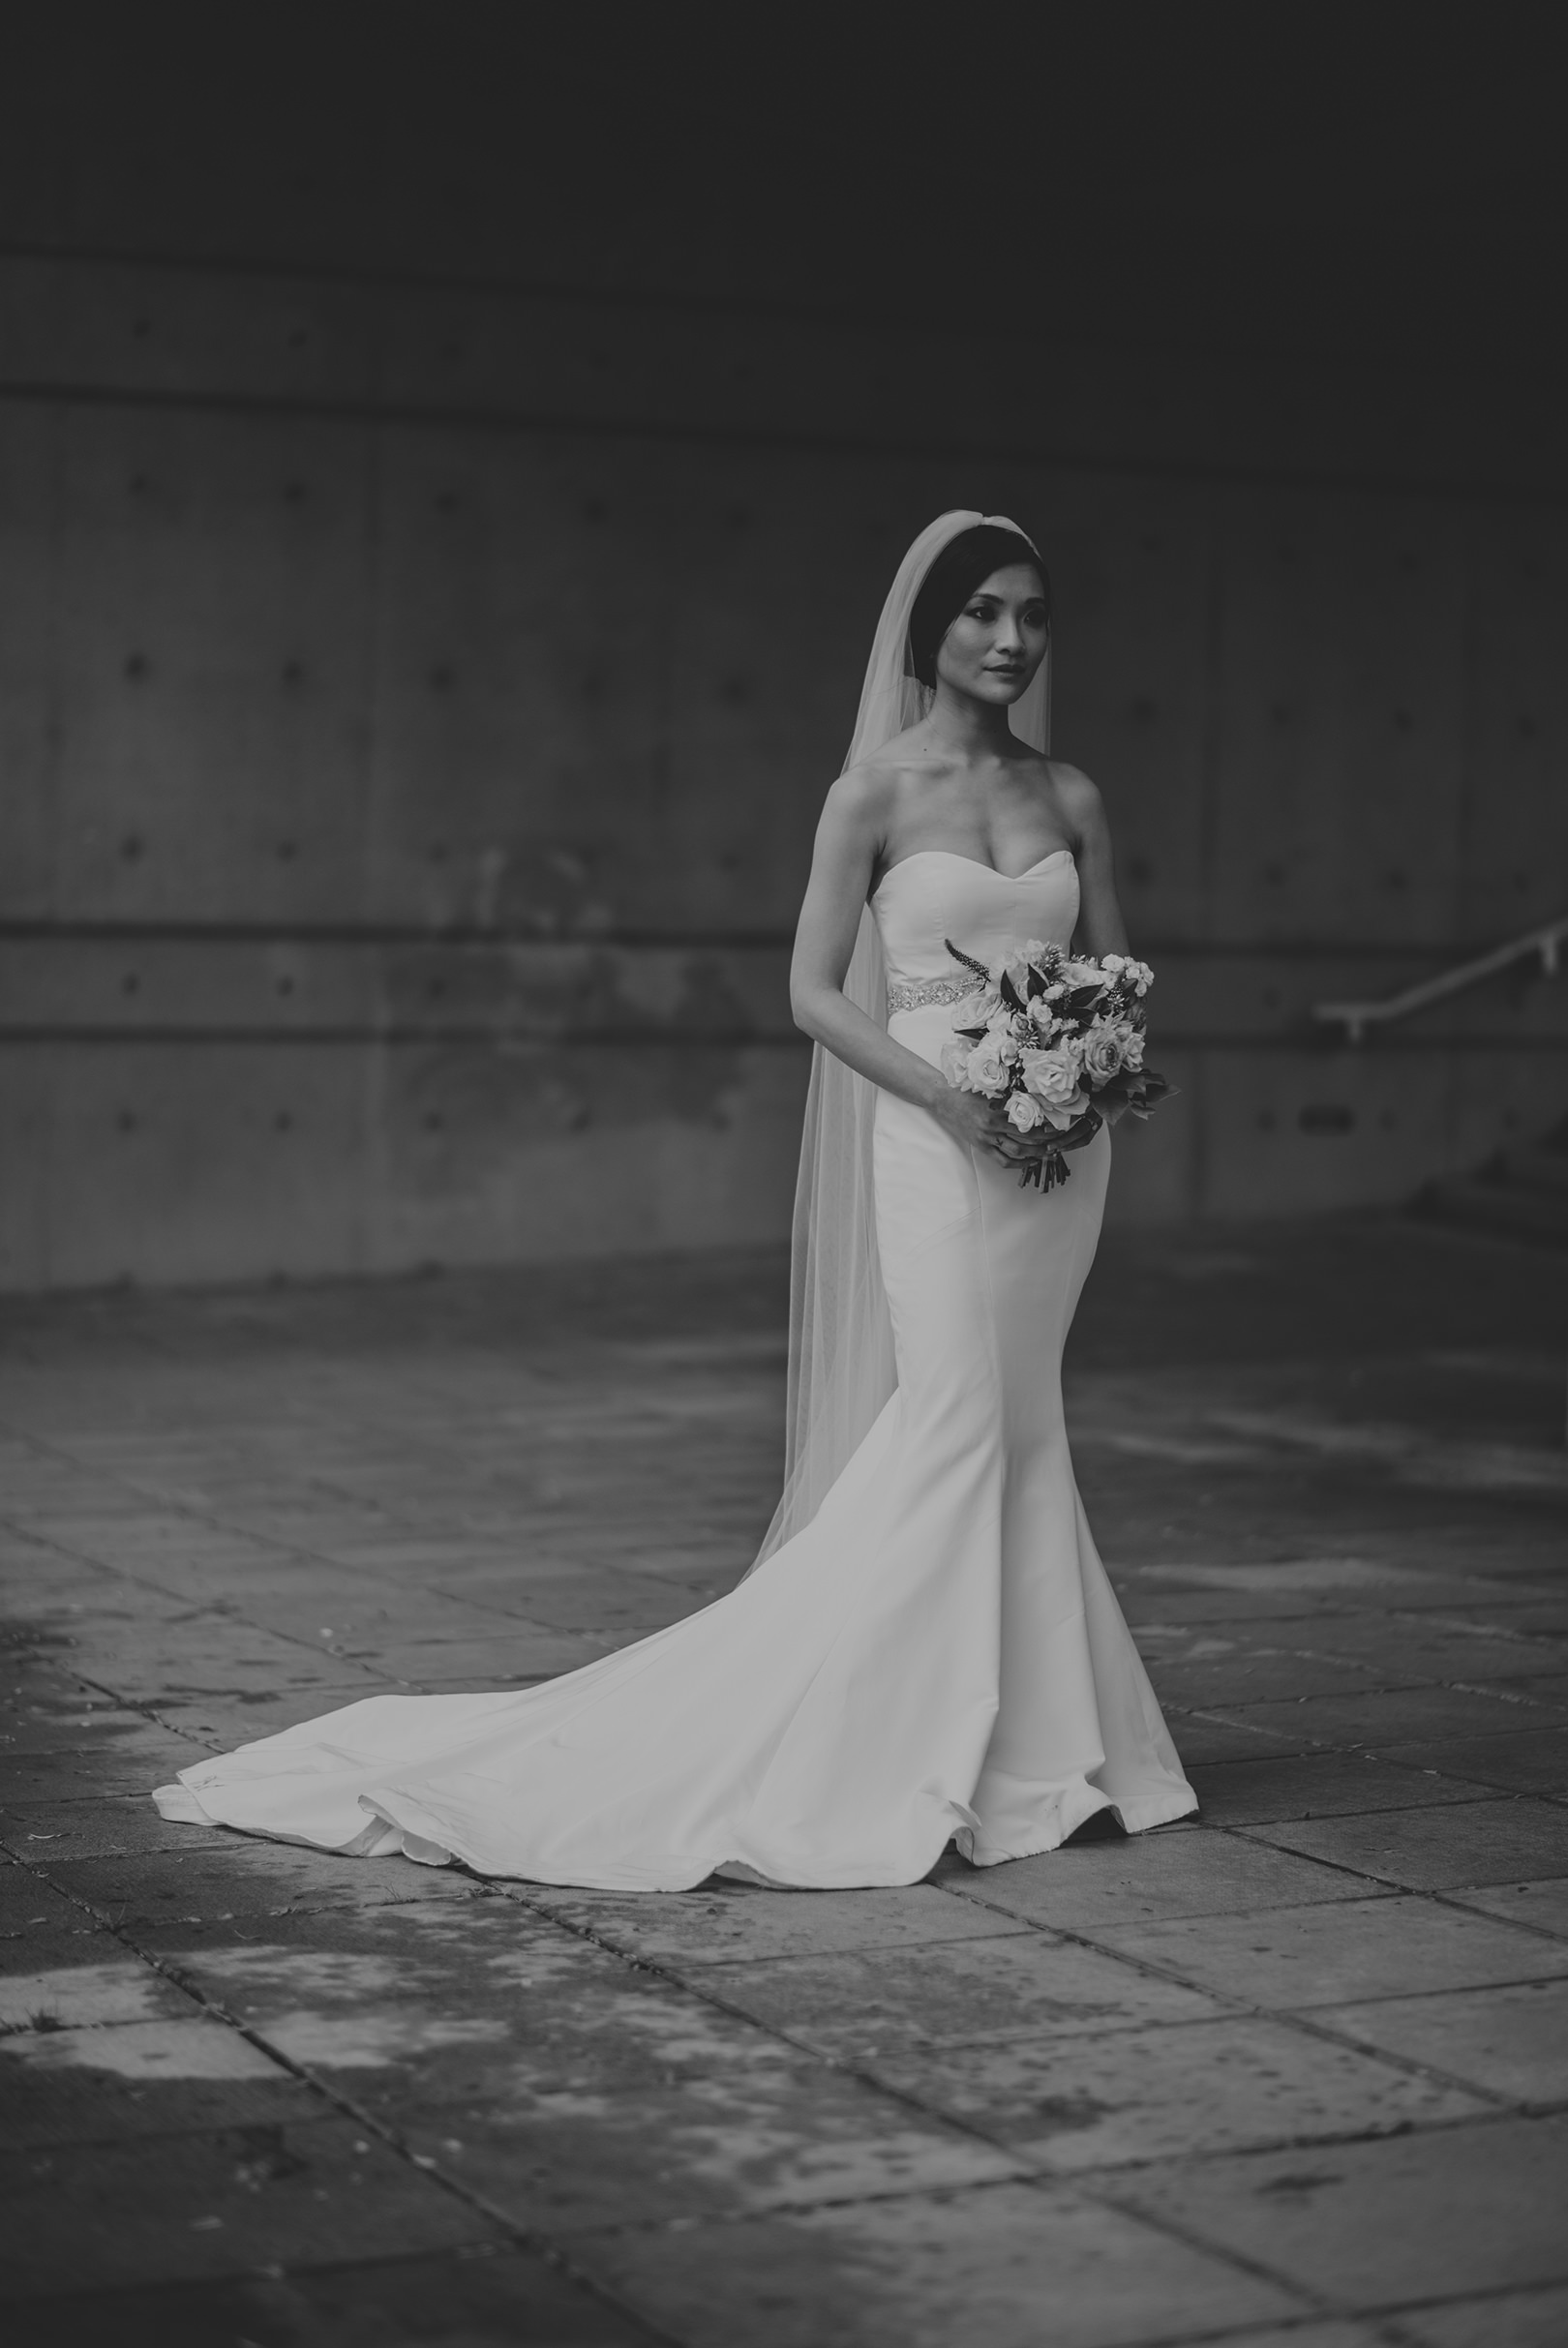 Spain Wedding Photographer - © Dallas Kolotylo Photography - 073